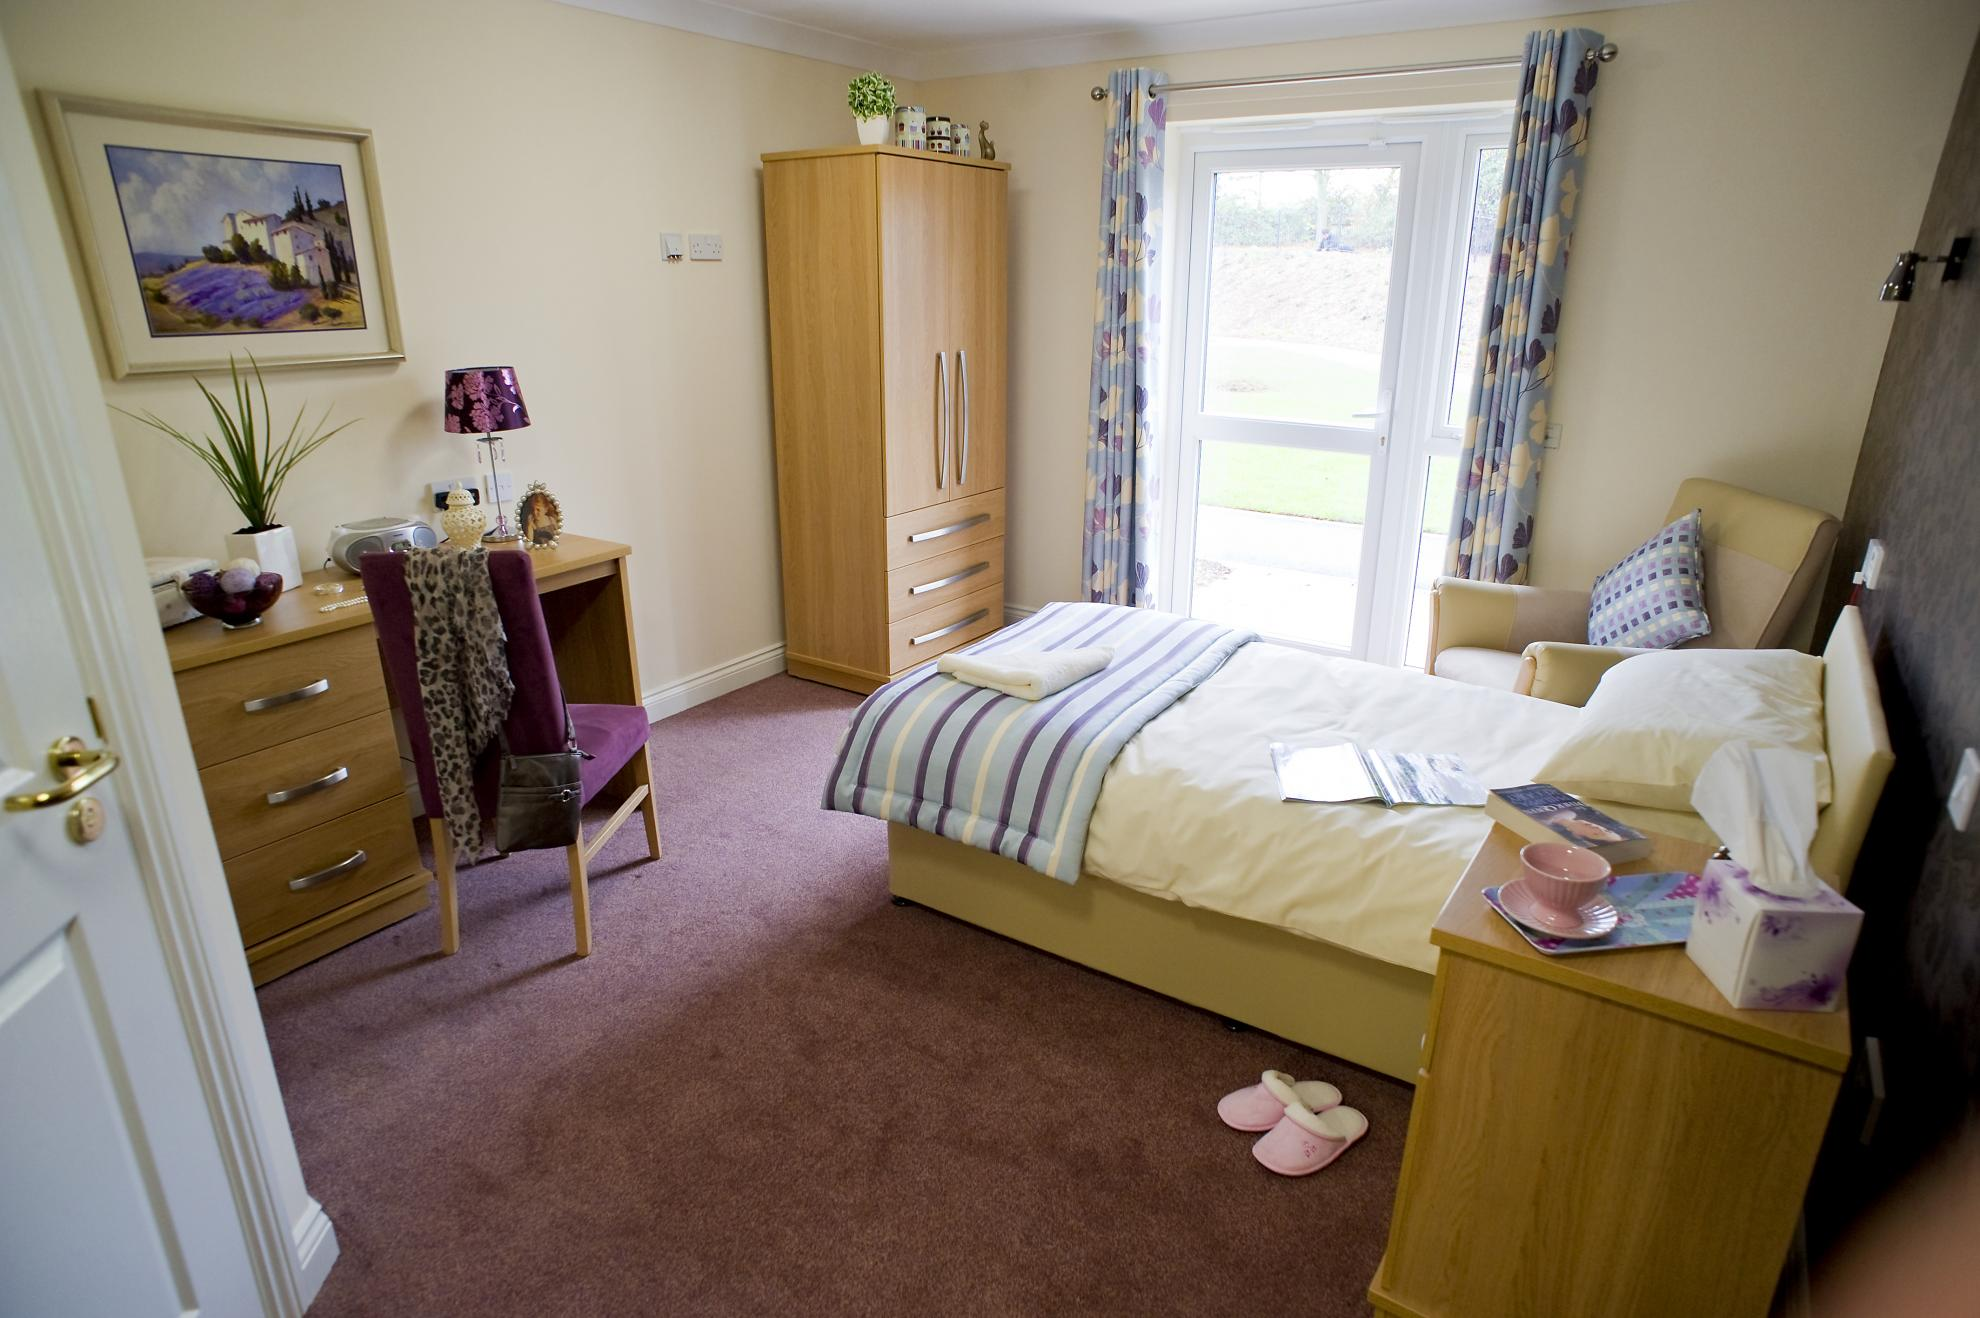 yarnton-care-home-bedroom.jpg